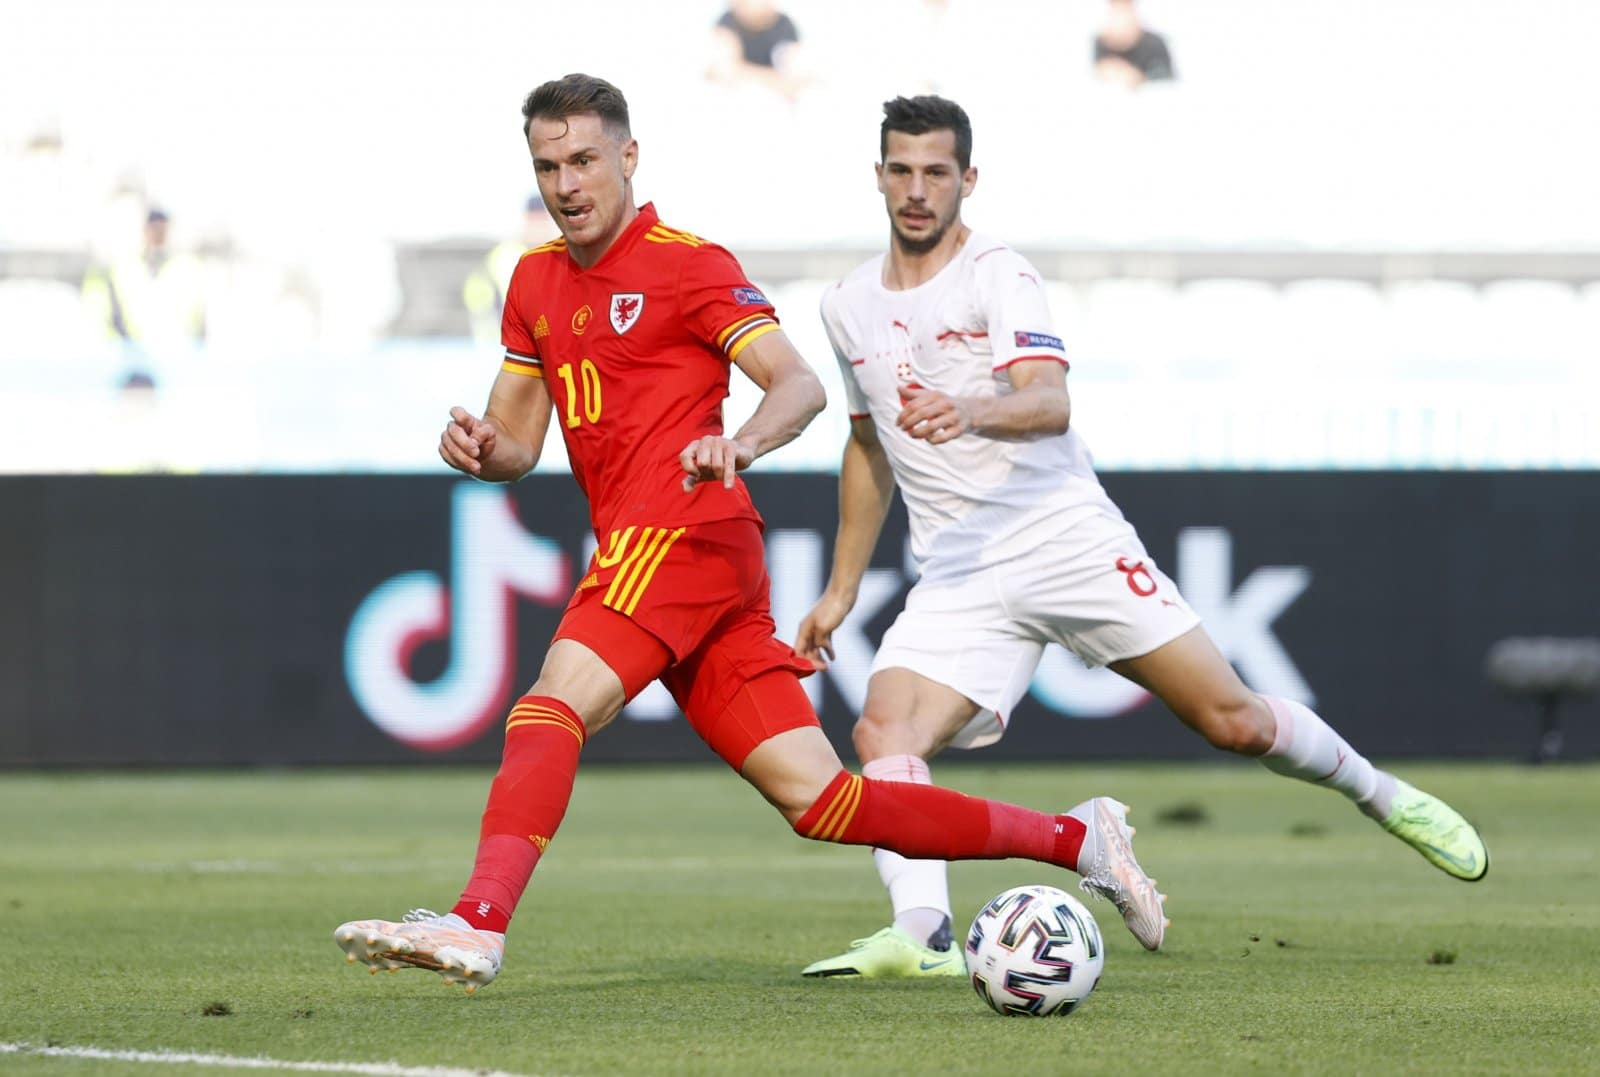 Euro 2020: Wales, Switzerland Share The Spoils In Opening Fixture